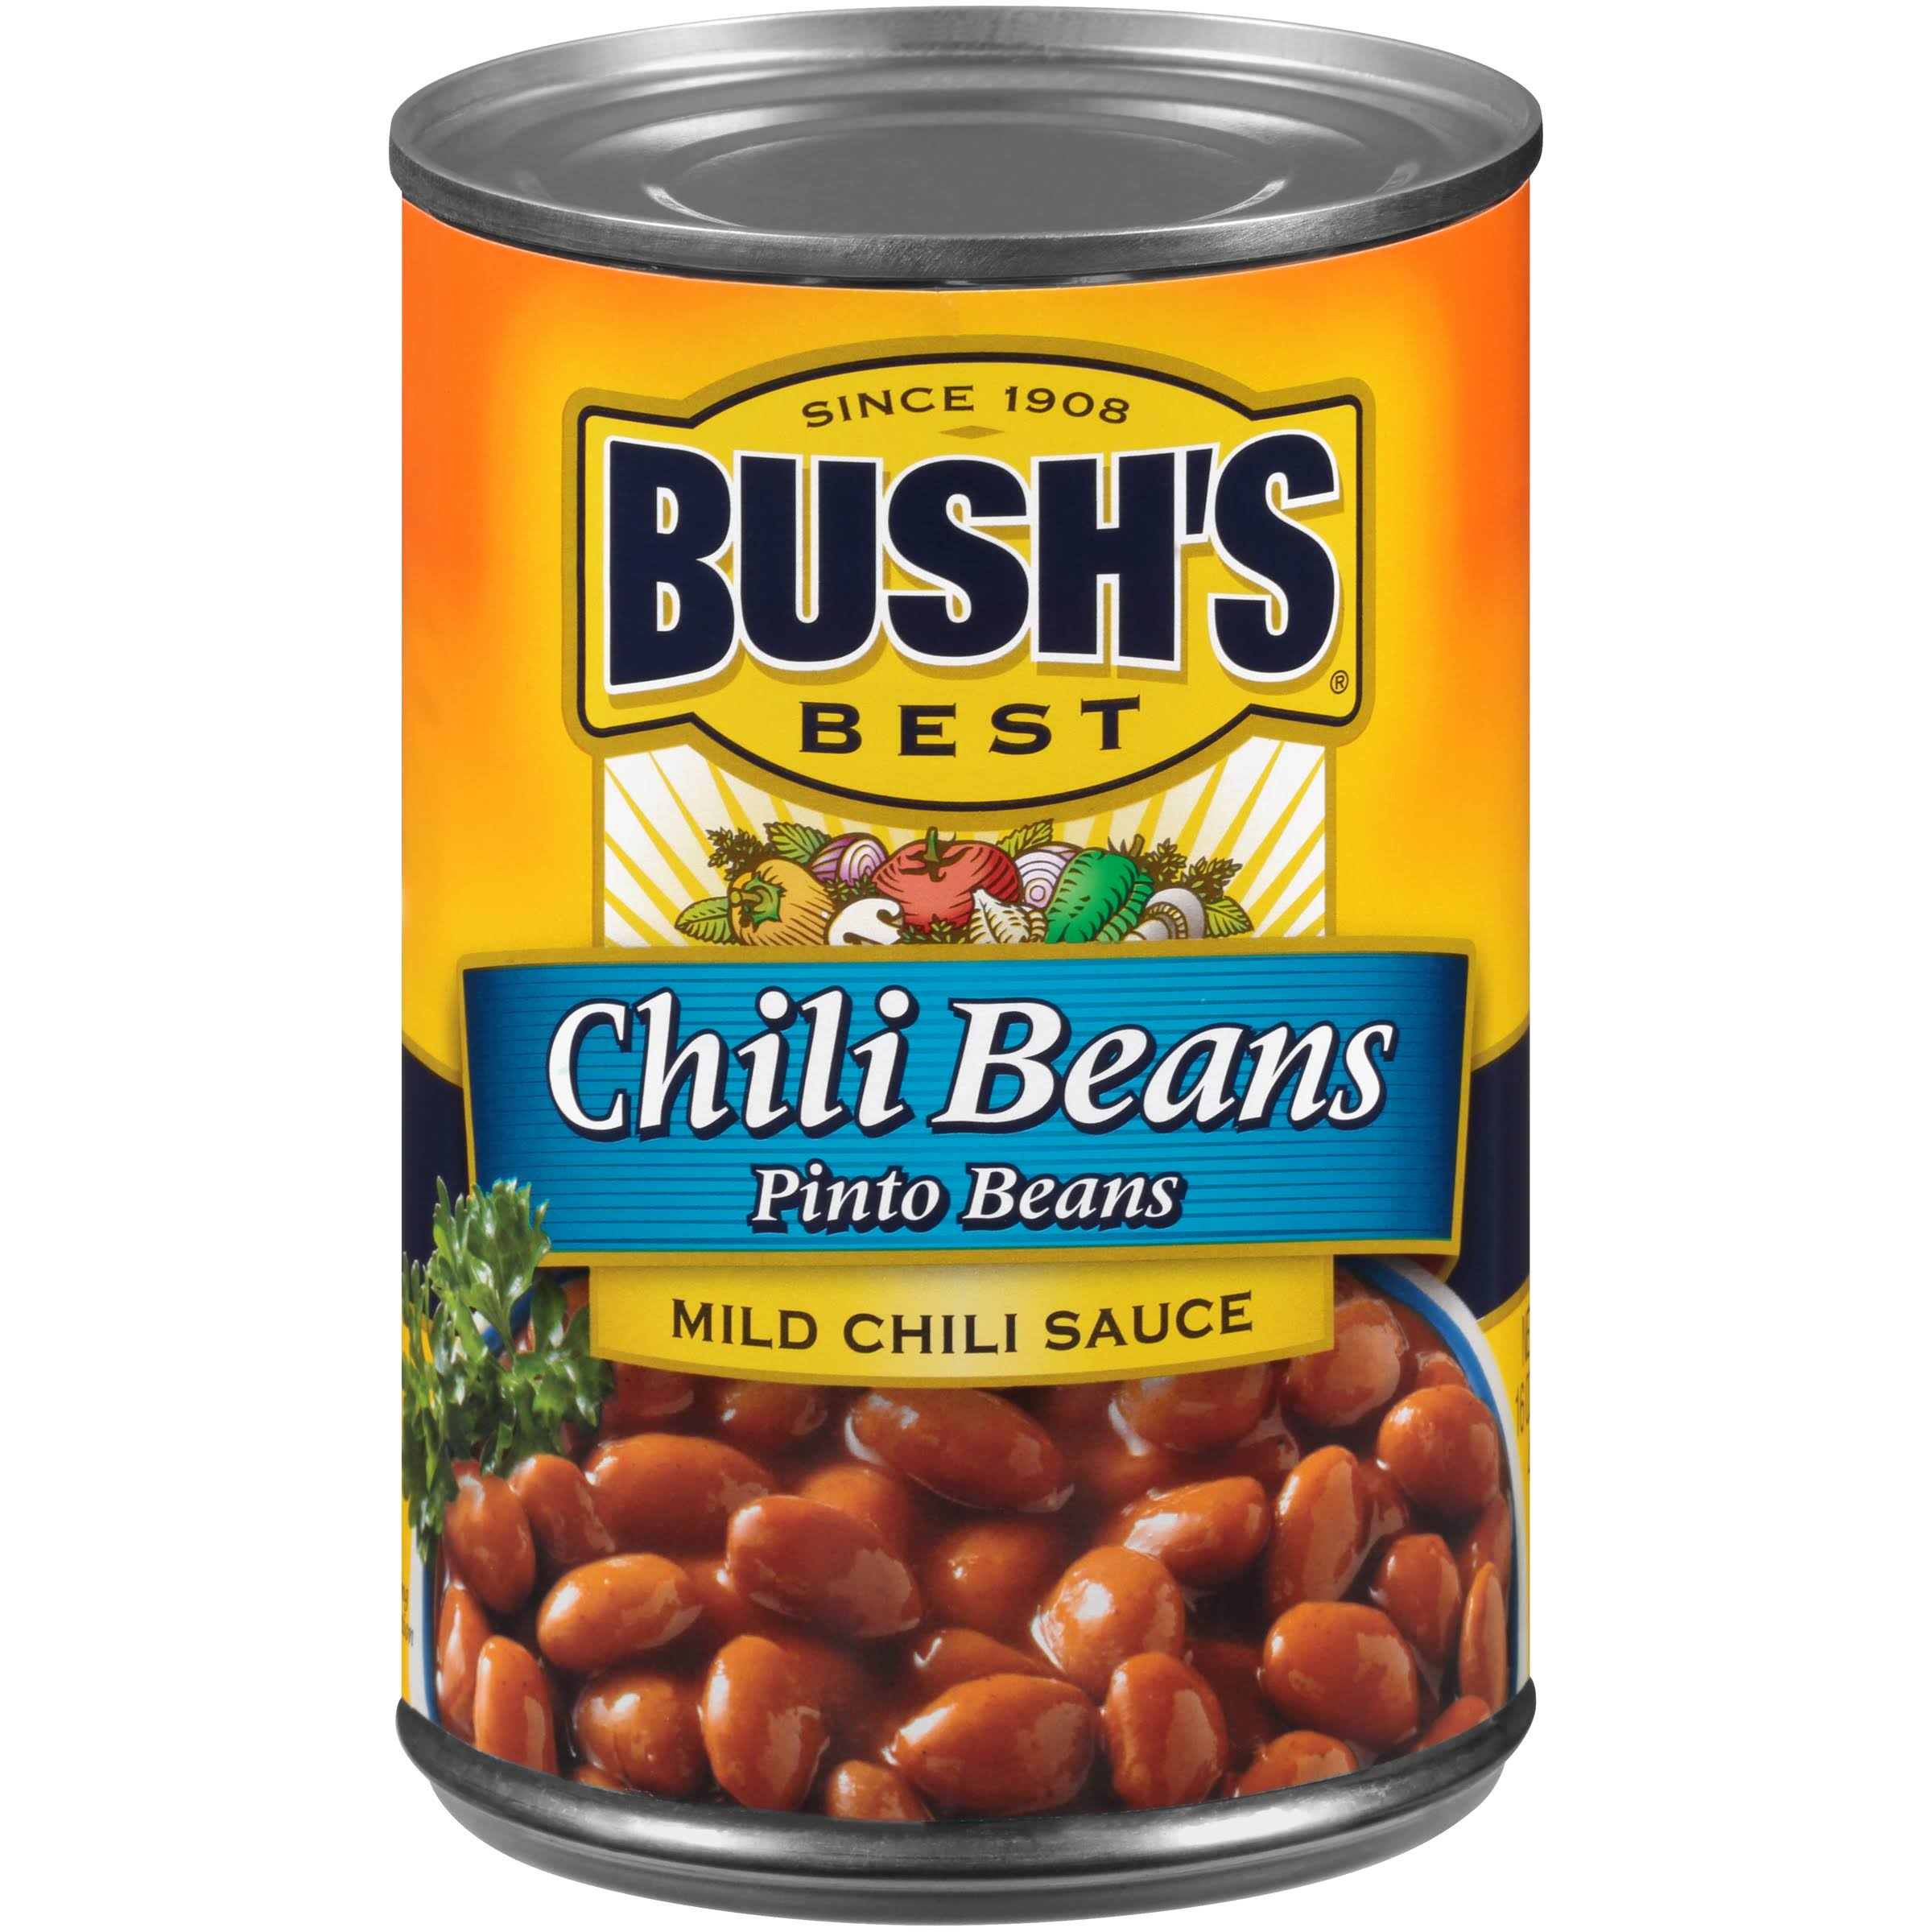 Bush's Best Mild Chili Sauce Pinto Beans - 16oz